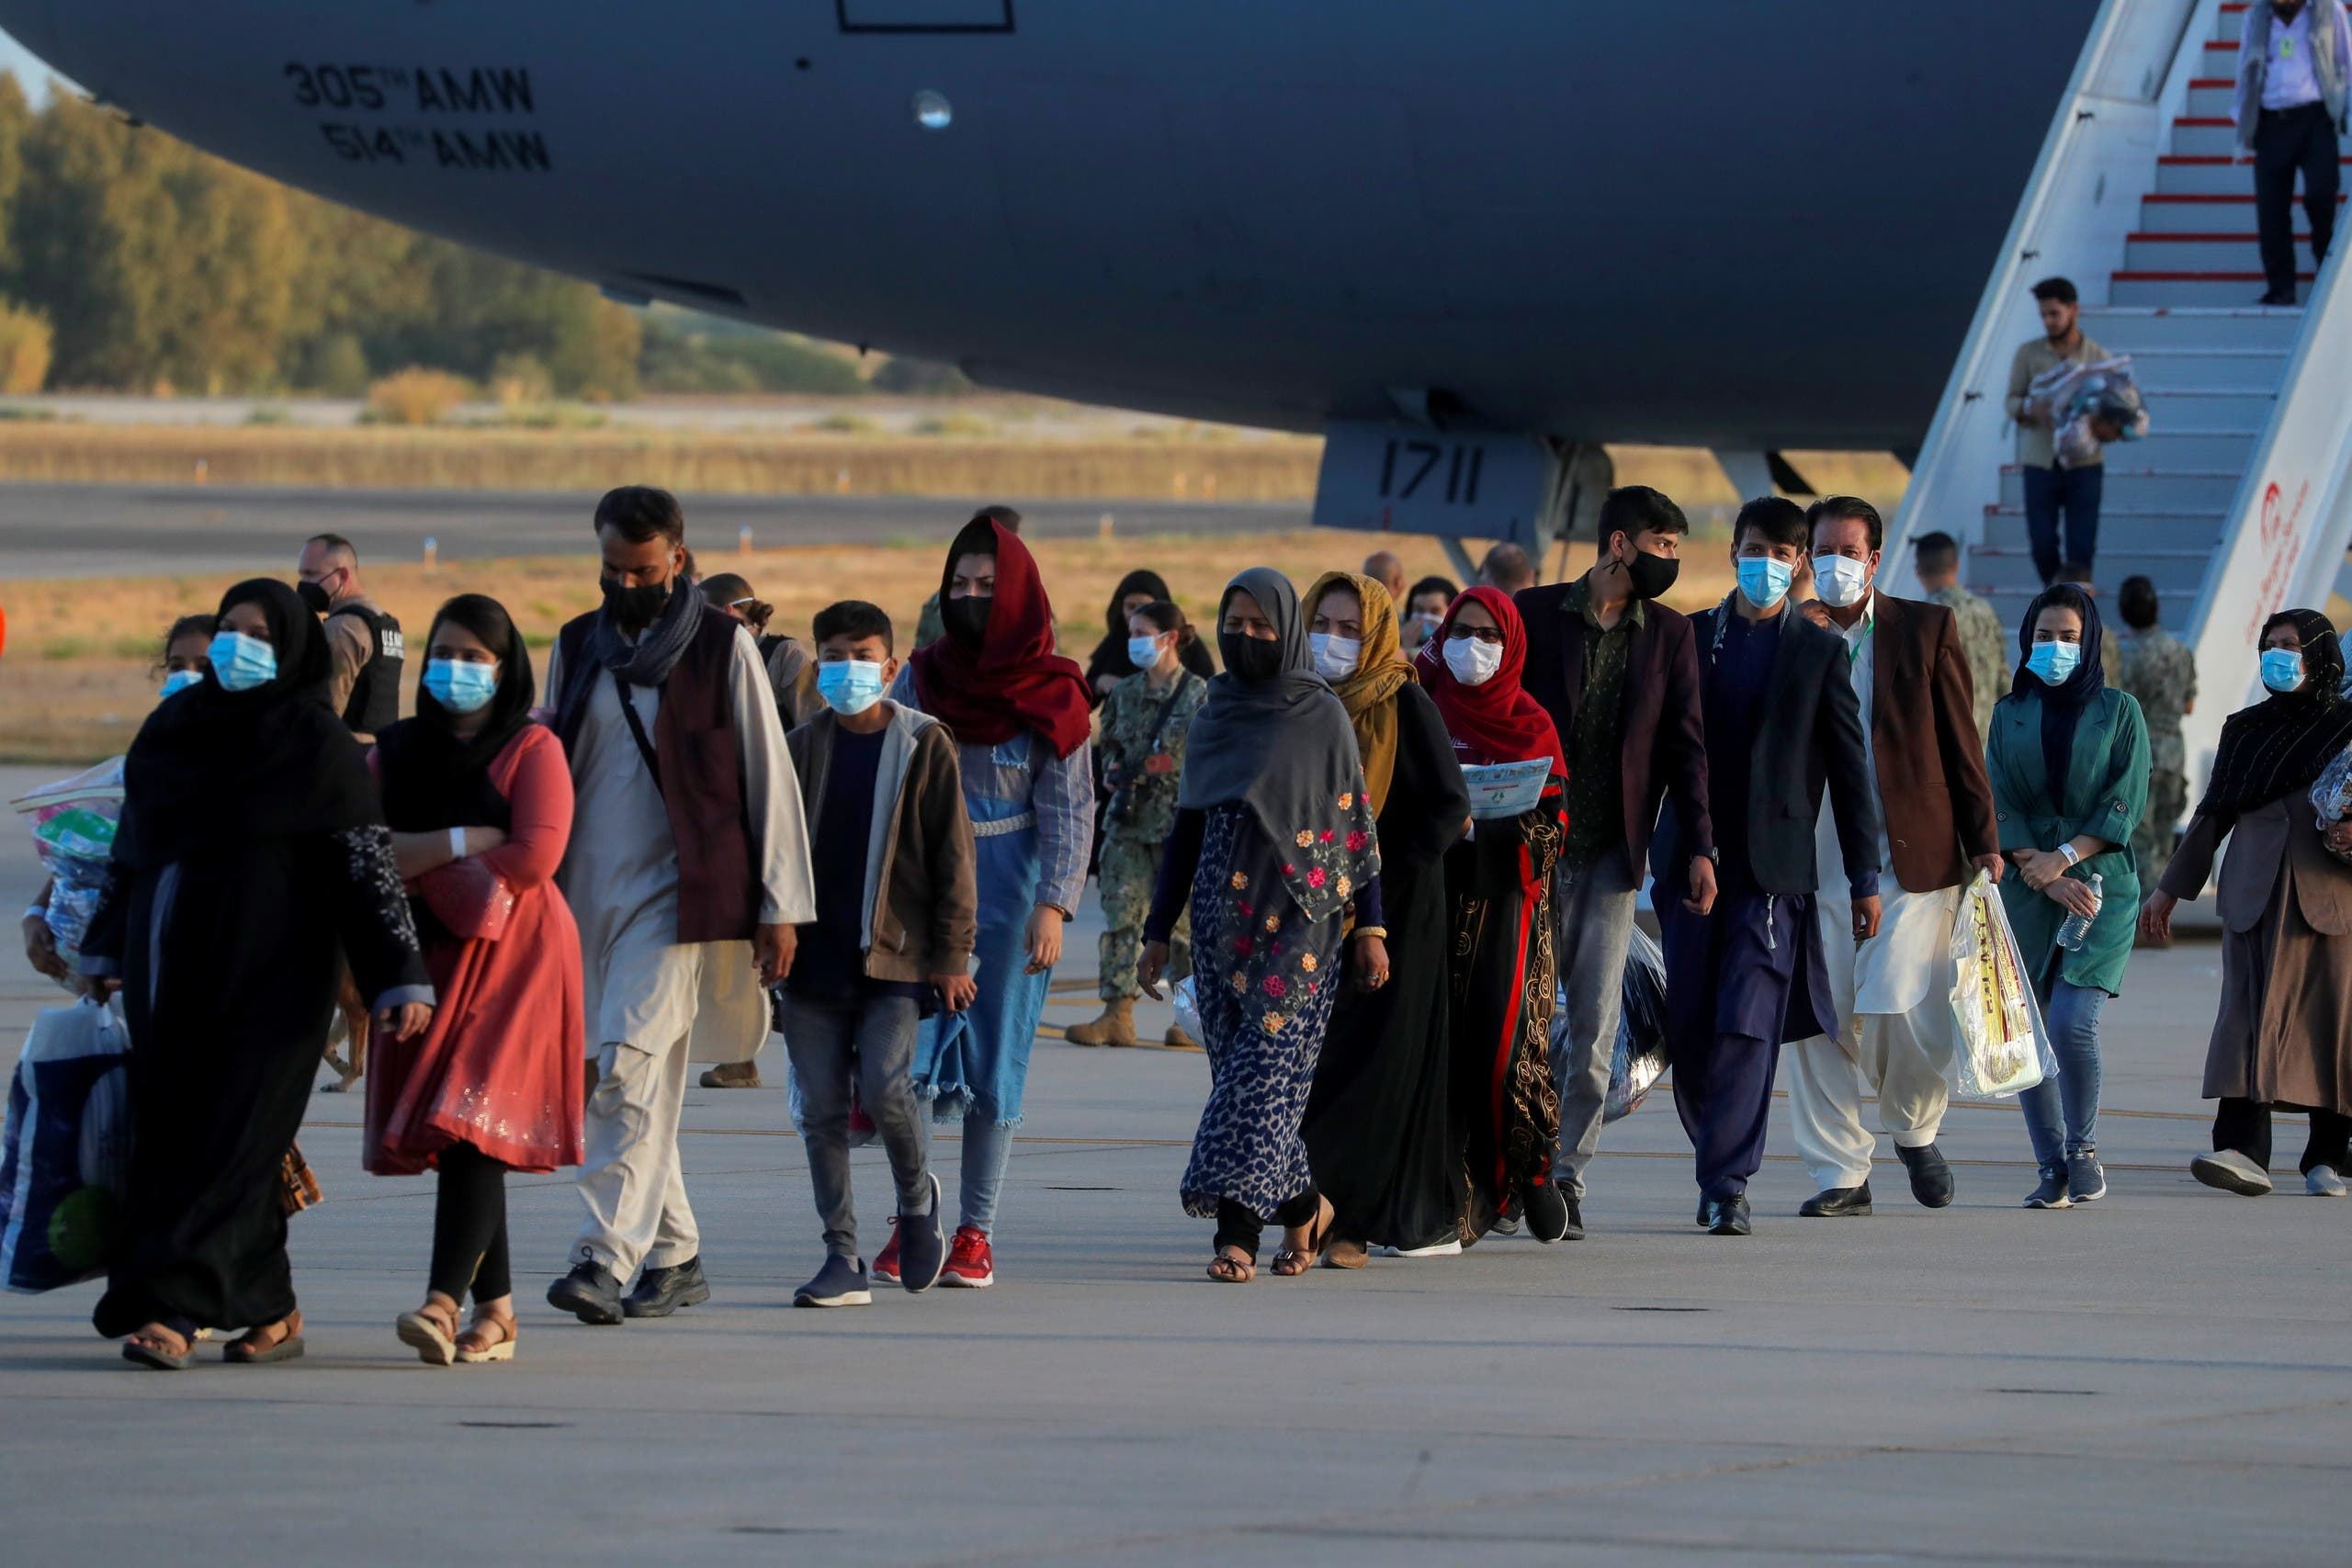 Afghan citizens, who have been evacuated from Kabul, disembark from a U.S Air Force transport plane as they arrive at Naval Station (NAVSTA) Rota Air Base in Rota, southern Spain, August 31, 2021. (File photo: Reuters)